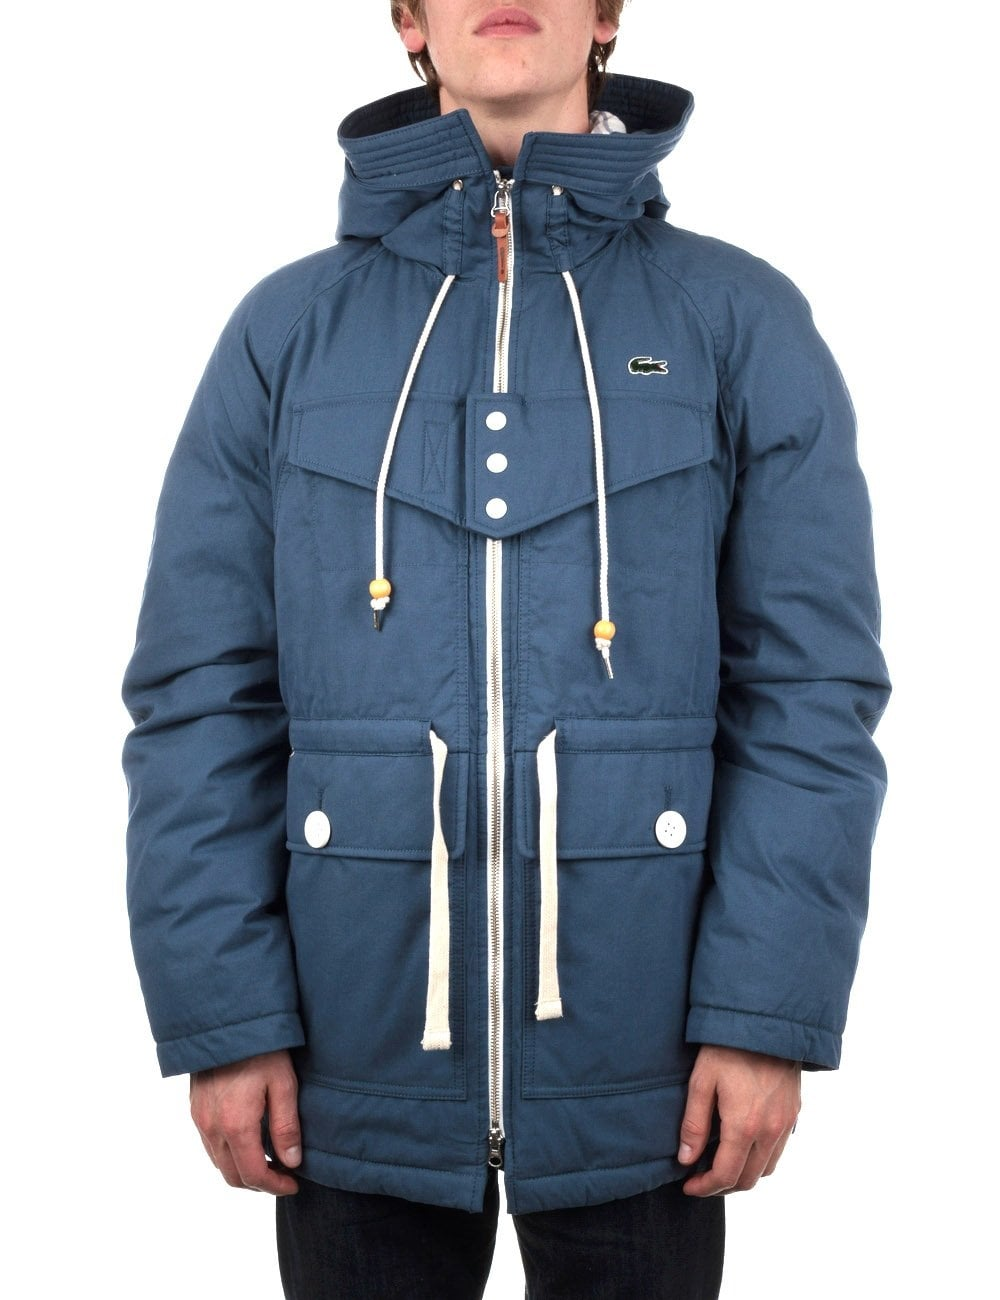 593c539d6d Lacoste Live Hooded Lined Parka - Ouessant Blue - Clothing from Fat ...